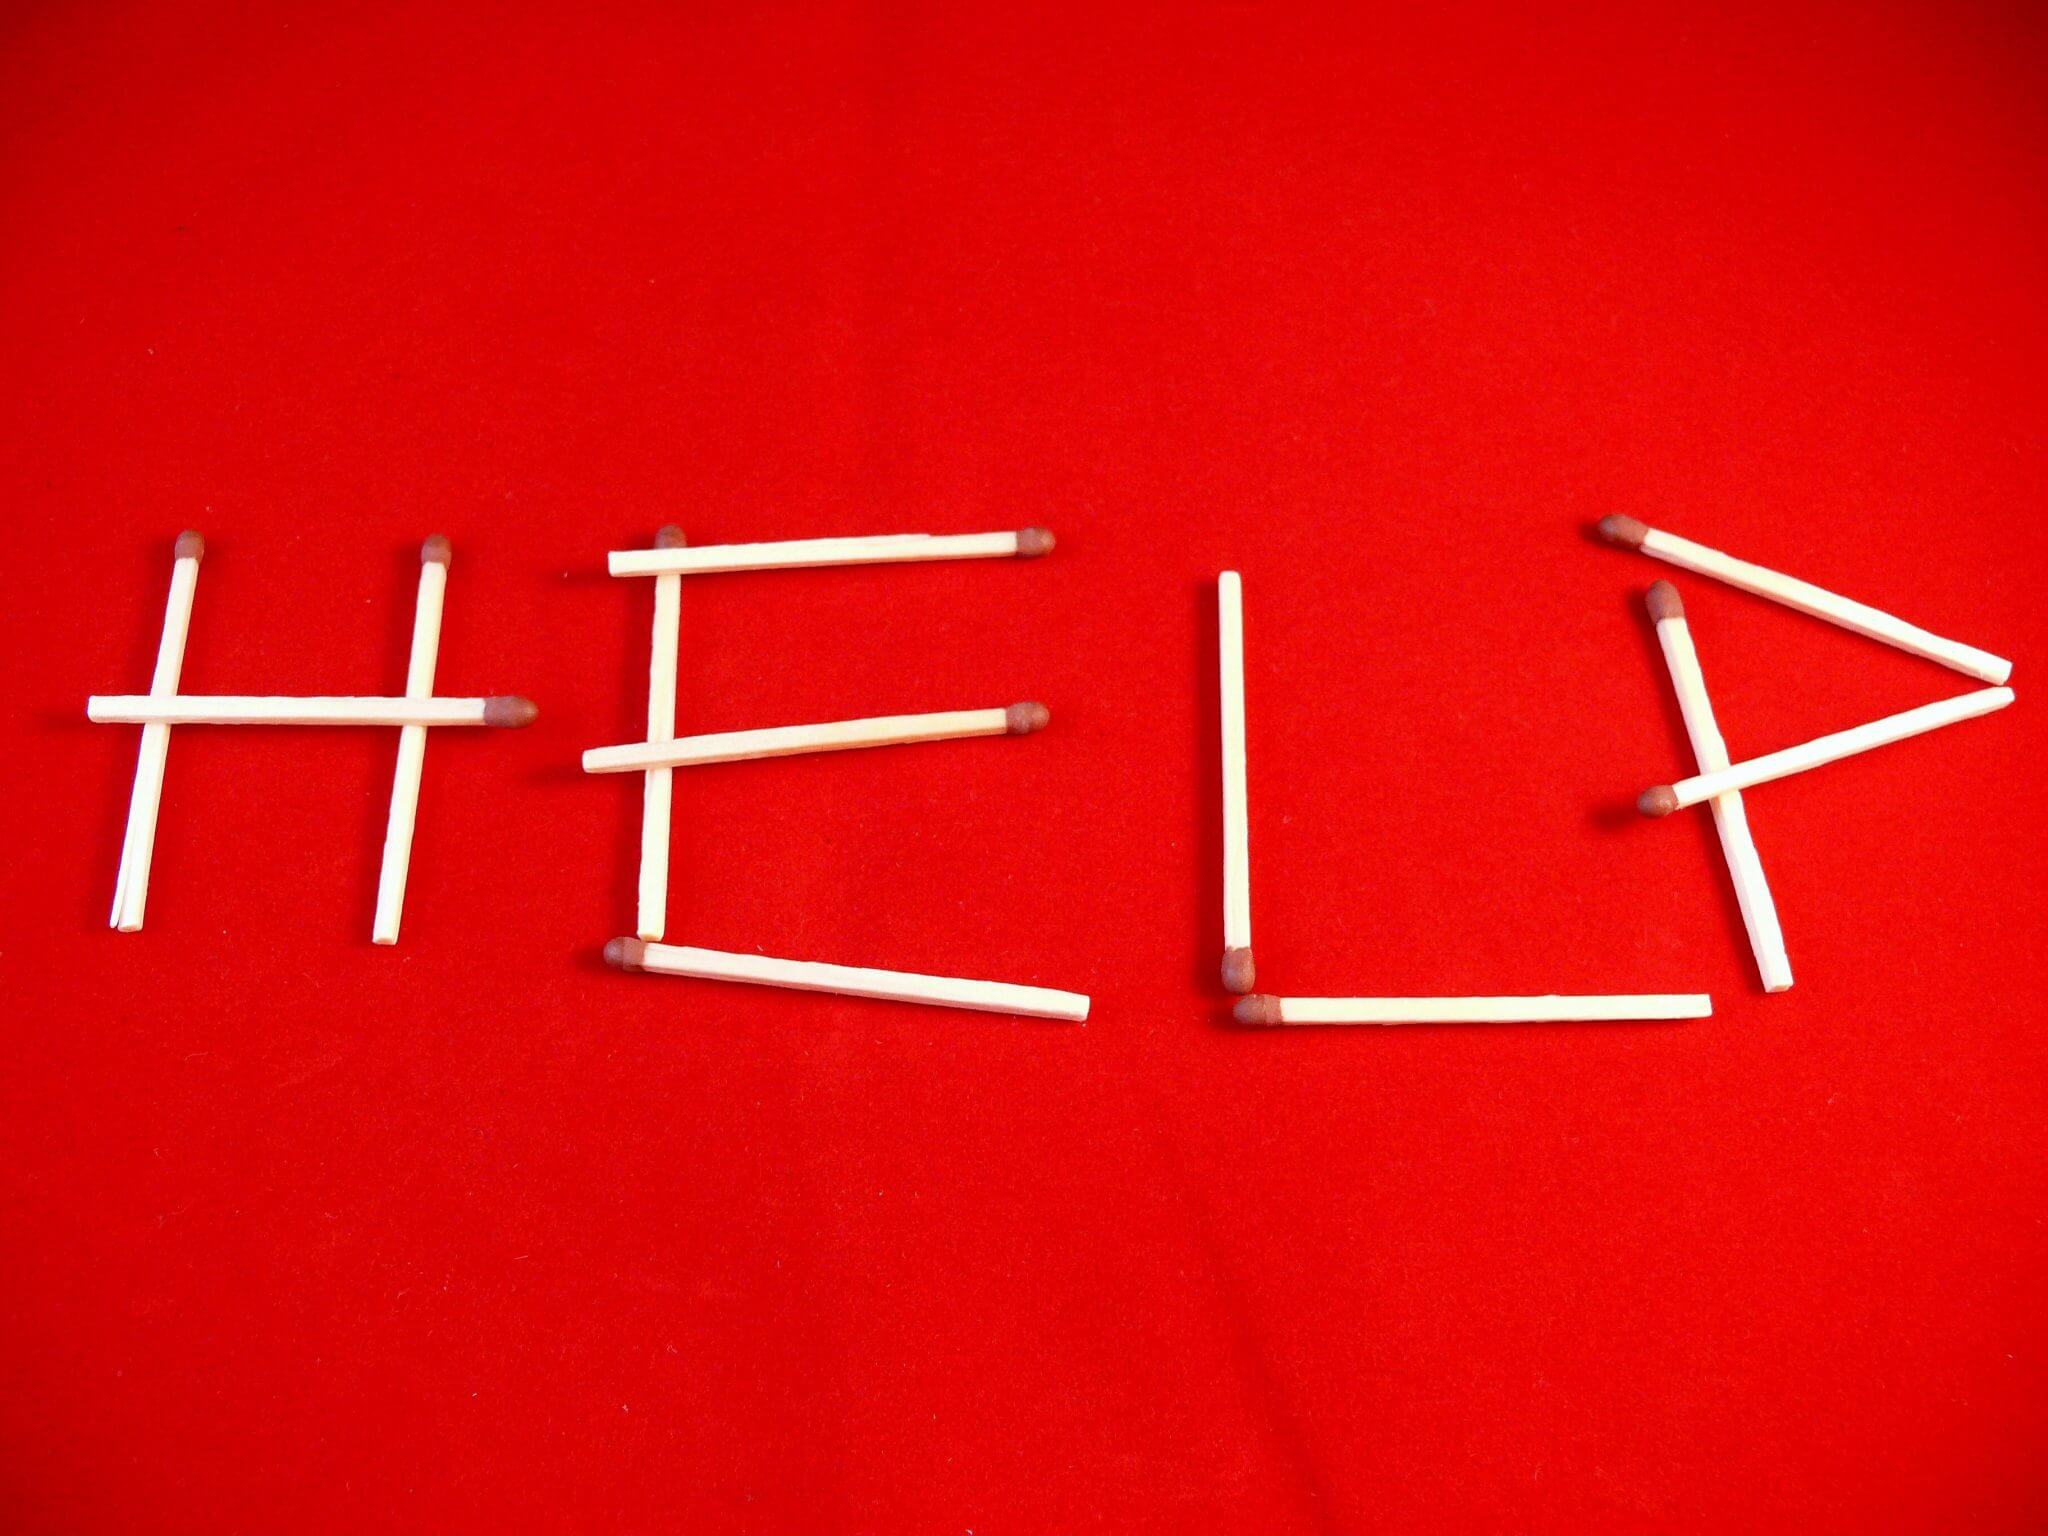 """Red image with the word """"help"""" spelled out in matchsticks."""